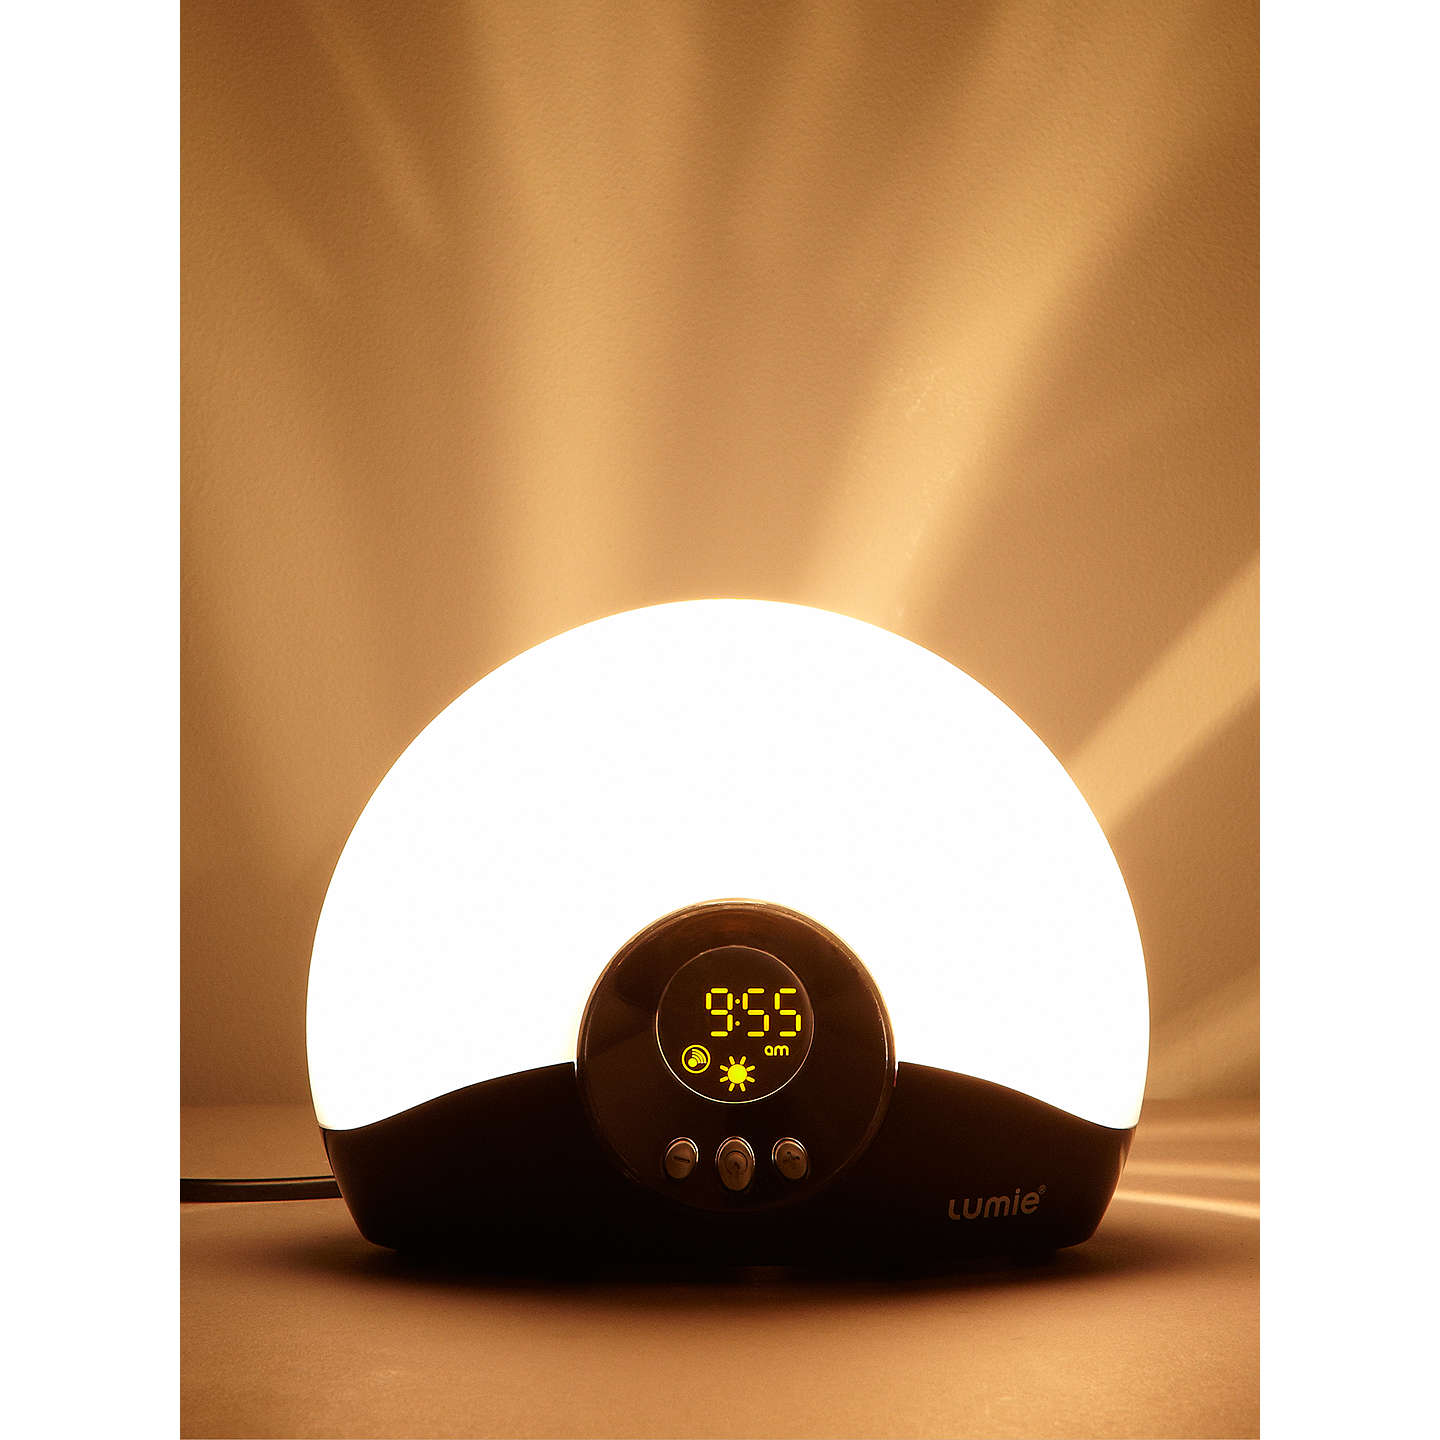 BuyLumie Bodyclock Go 75 Wake Up to Daylight Light Online at johnlewis.com